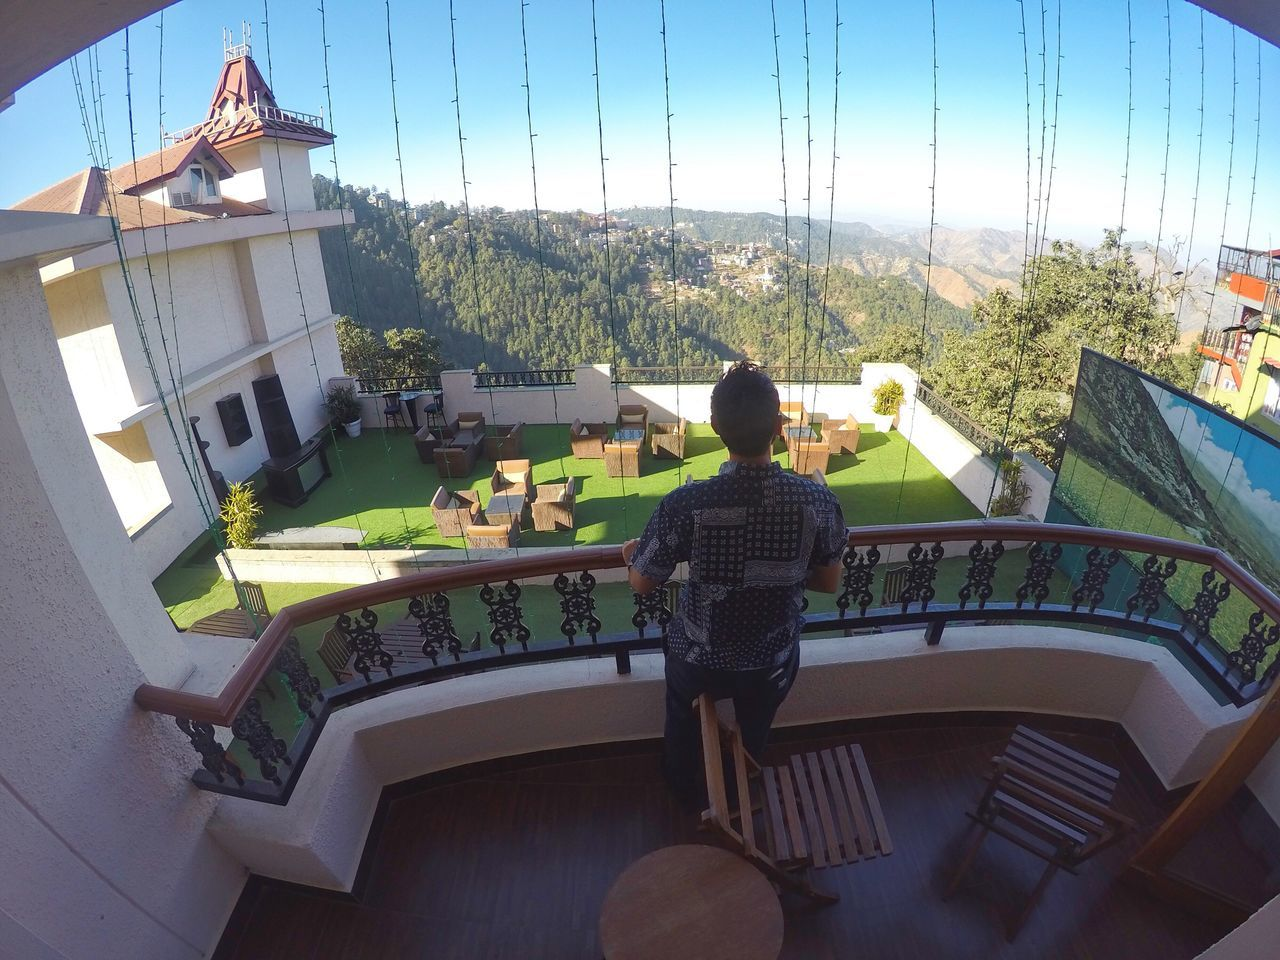 My view @radissonmanali Real People Leisure Activity Lifestyles Rear View Full Length Balcony Architecture Women Tree Day Outdoors Sky One Person Adult People Gopro Goprooftheday GoPrography Manali India Indiapictures